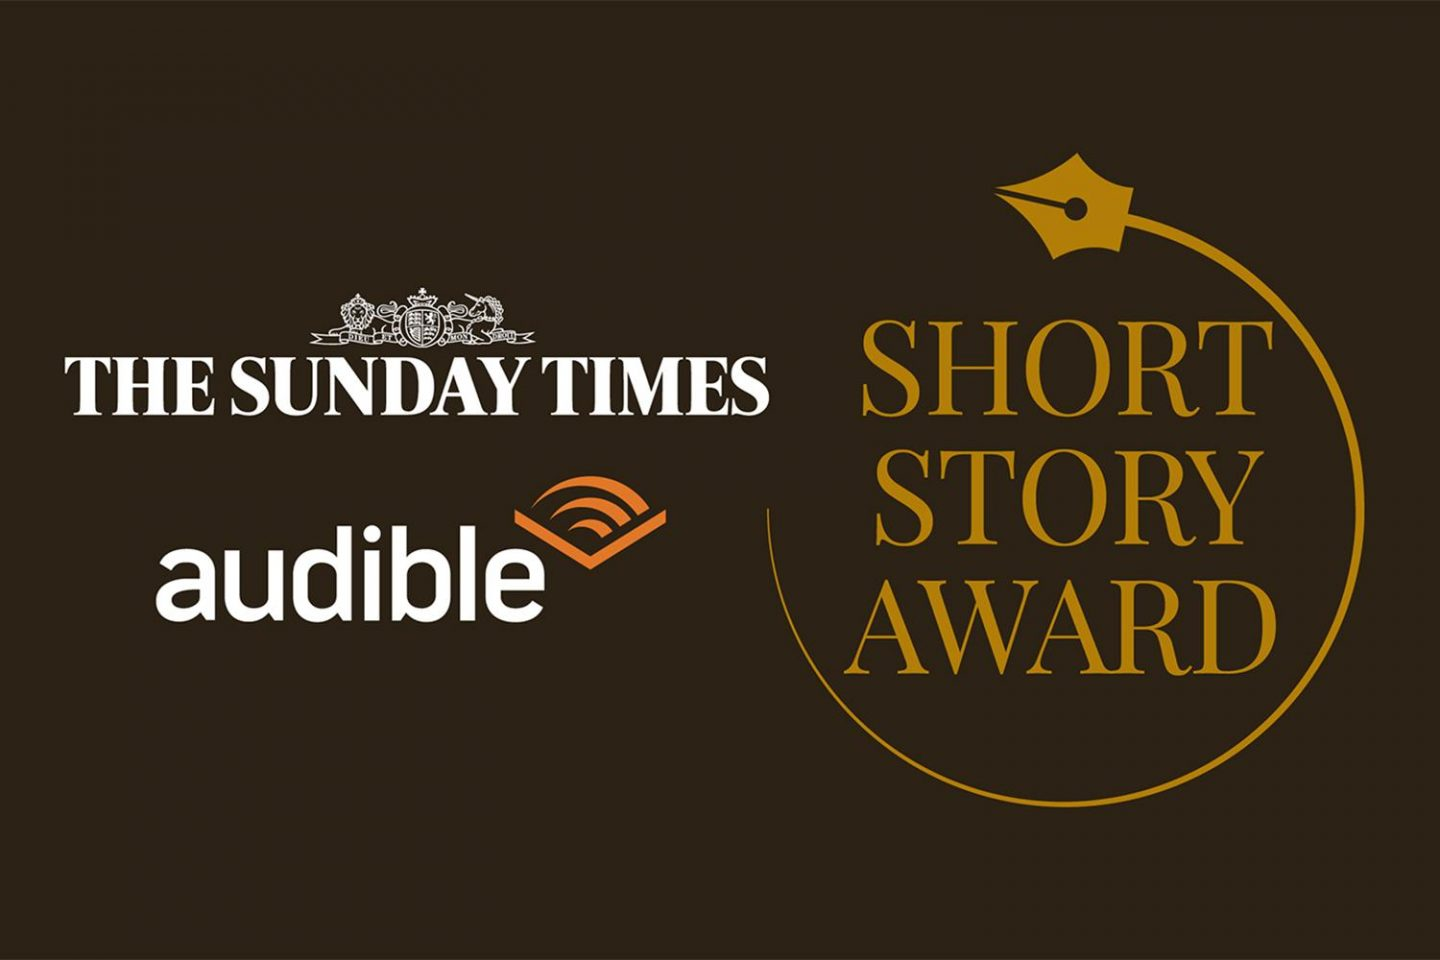 The Sunday Times Short Story Award 2020: Entries Now Open for the World's Richest Short Story Prize